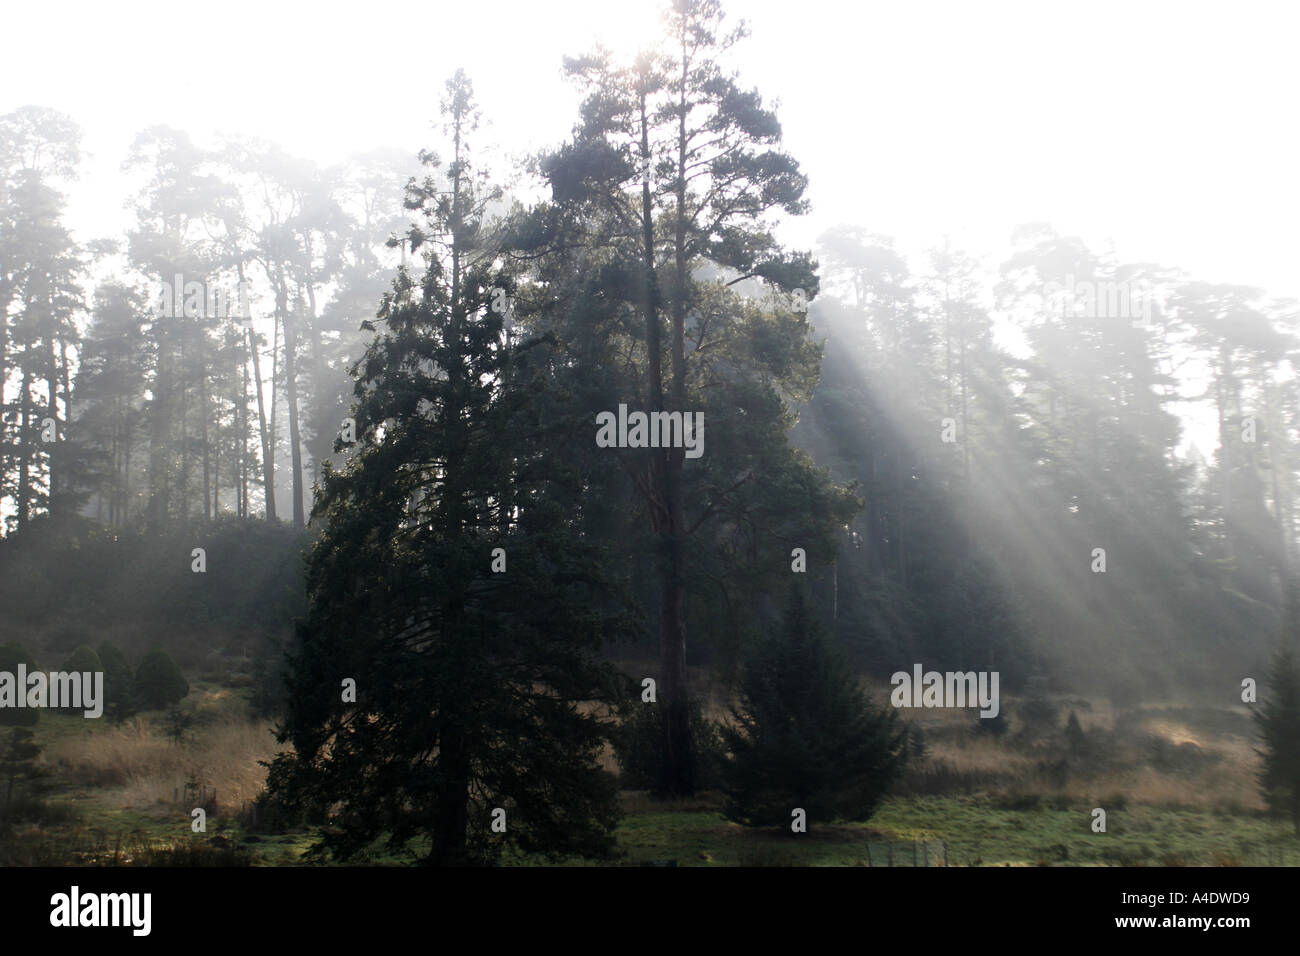 morning light shines through trees at Bedgebury National Pinetum in Kent UK - Stock Image